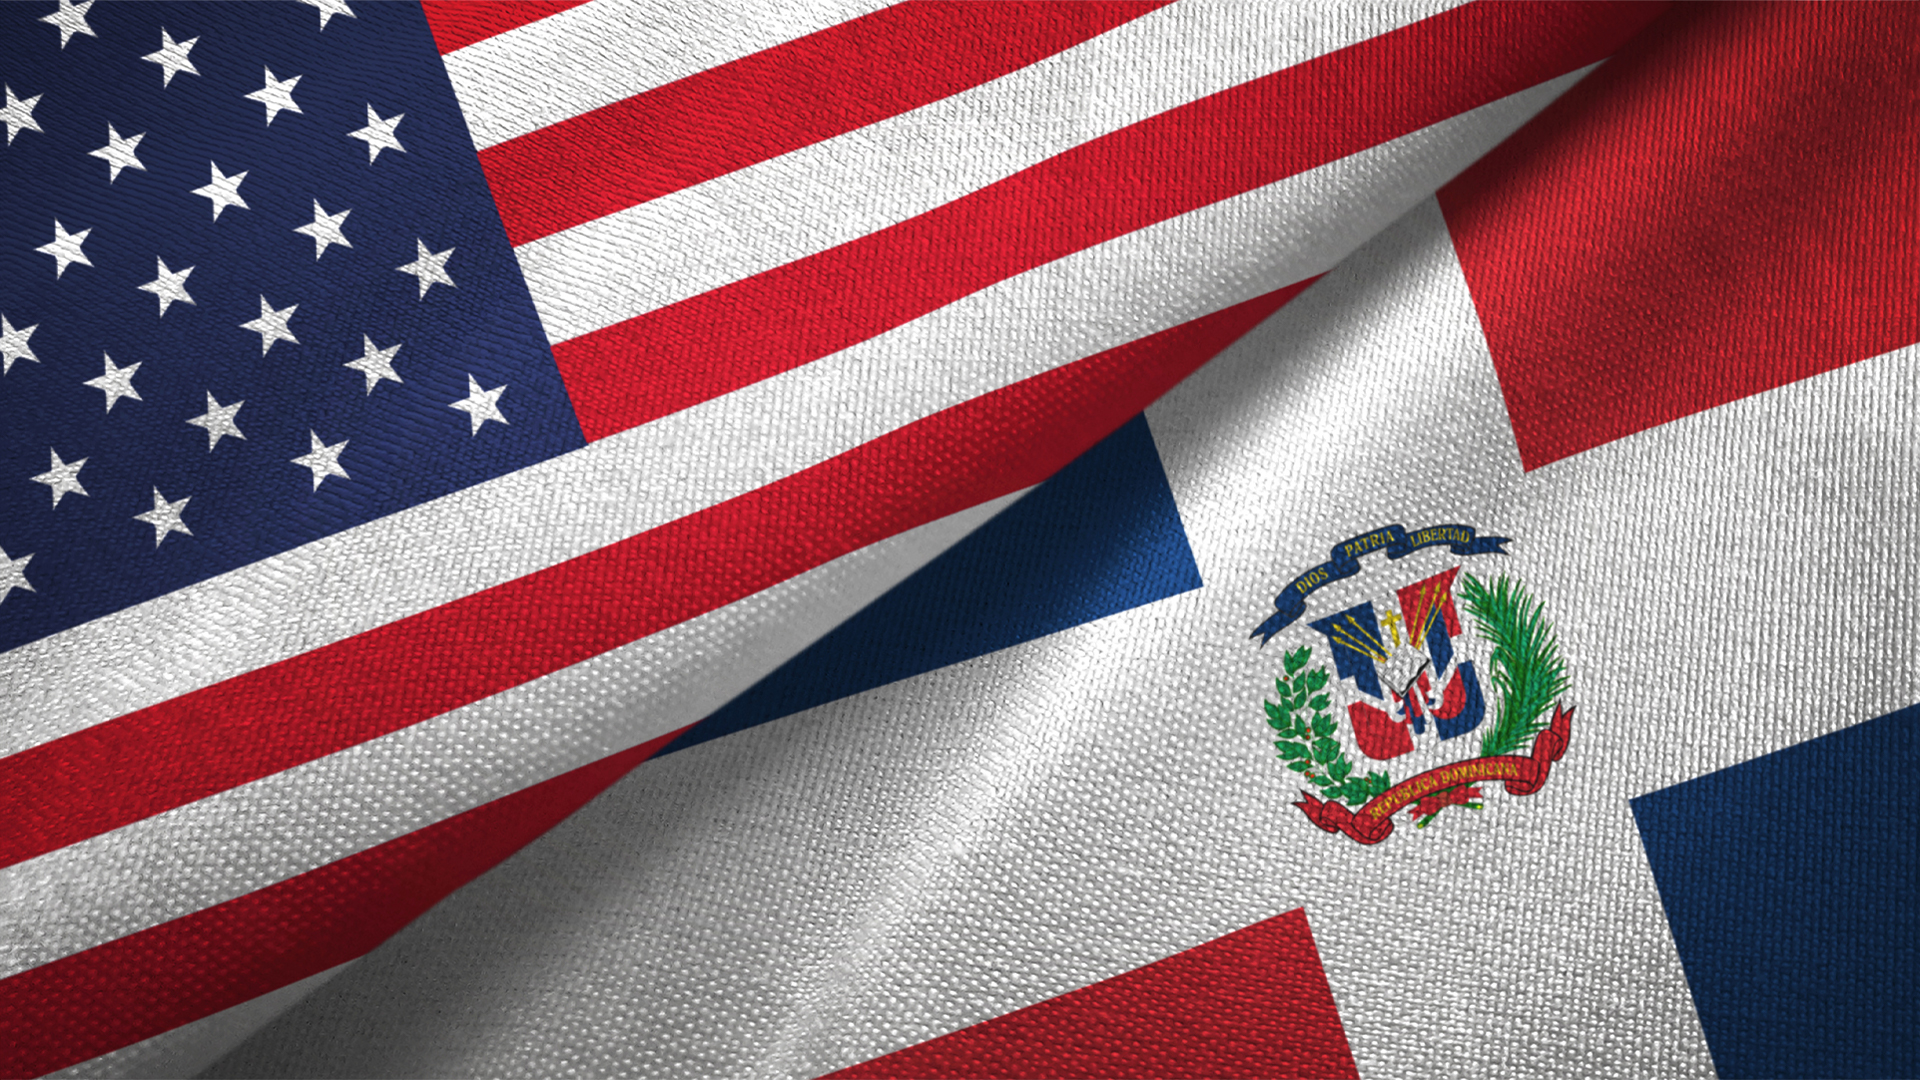 United States and Dominican Republic two flags textile cloth, fabric texture Image for Hero Box